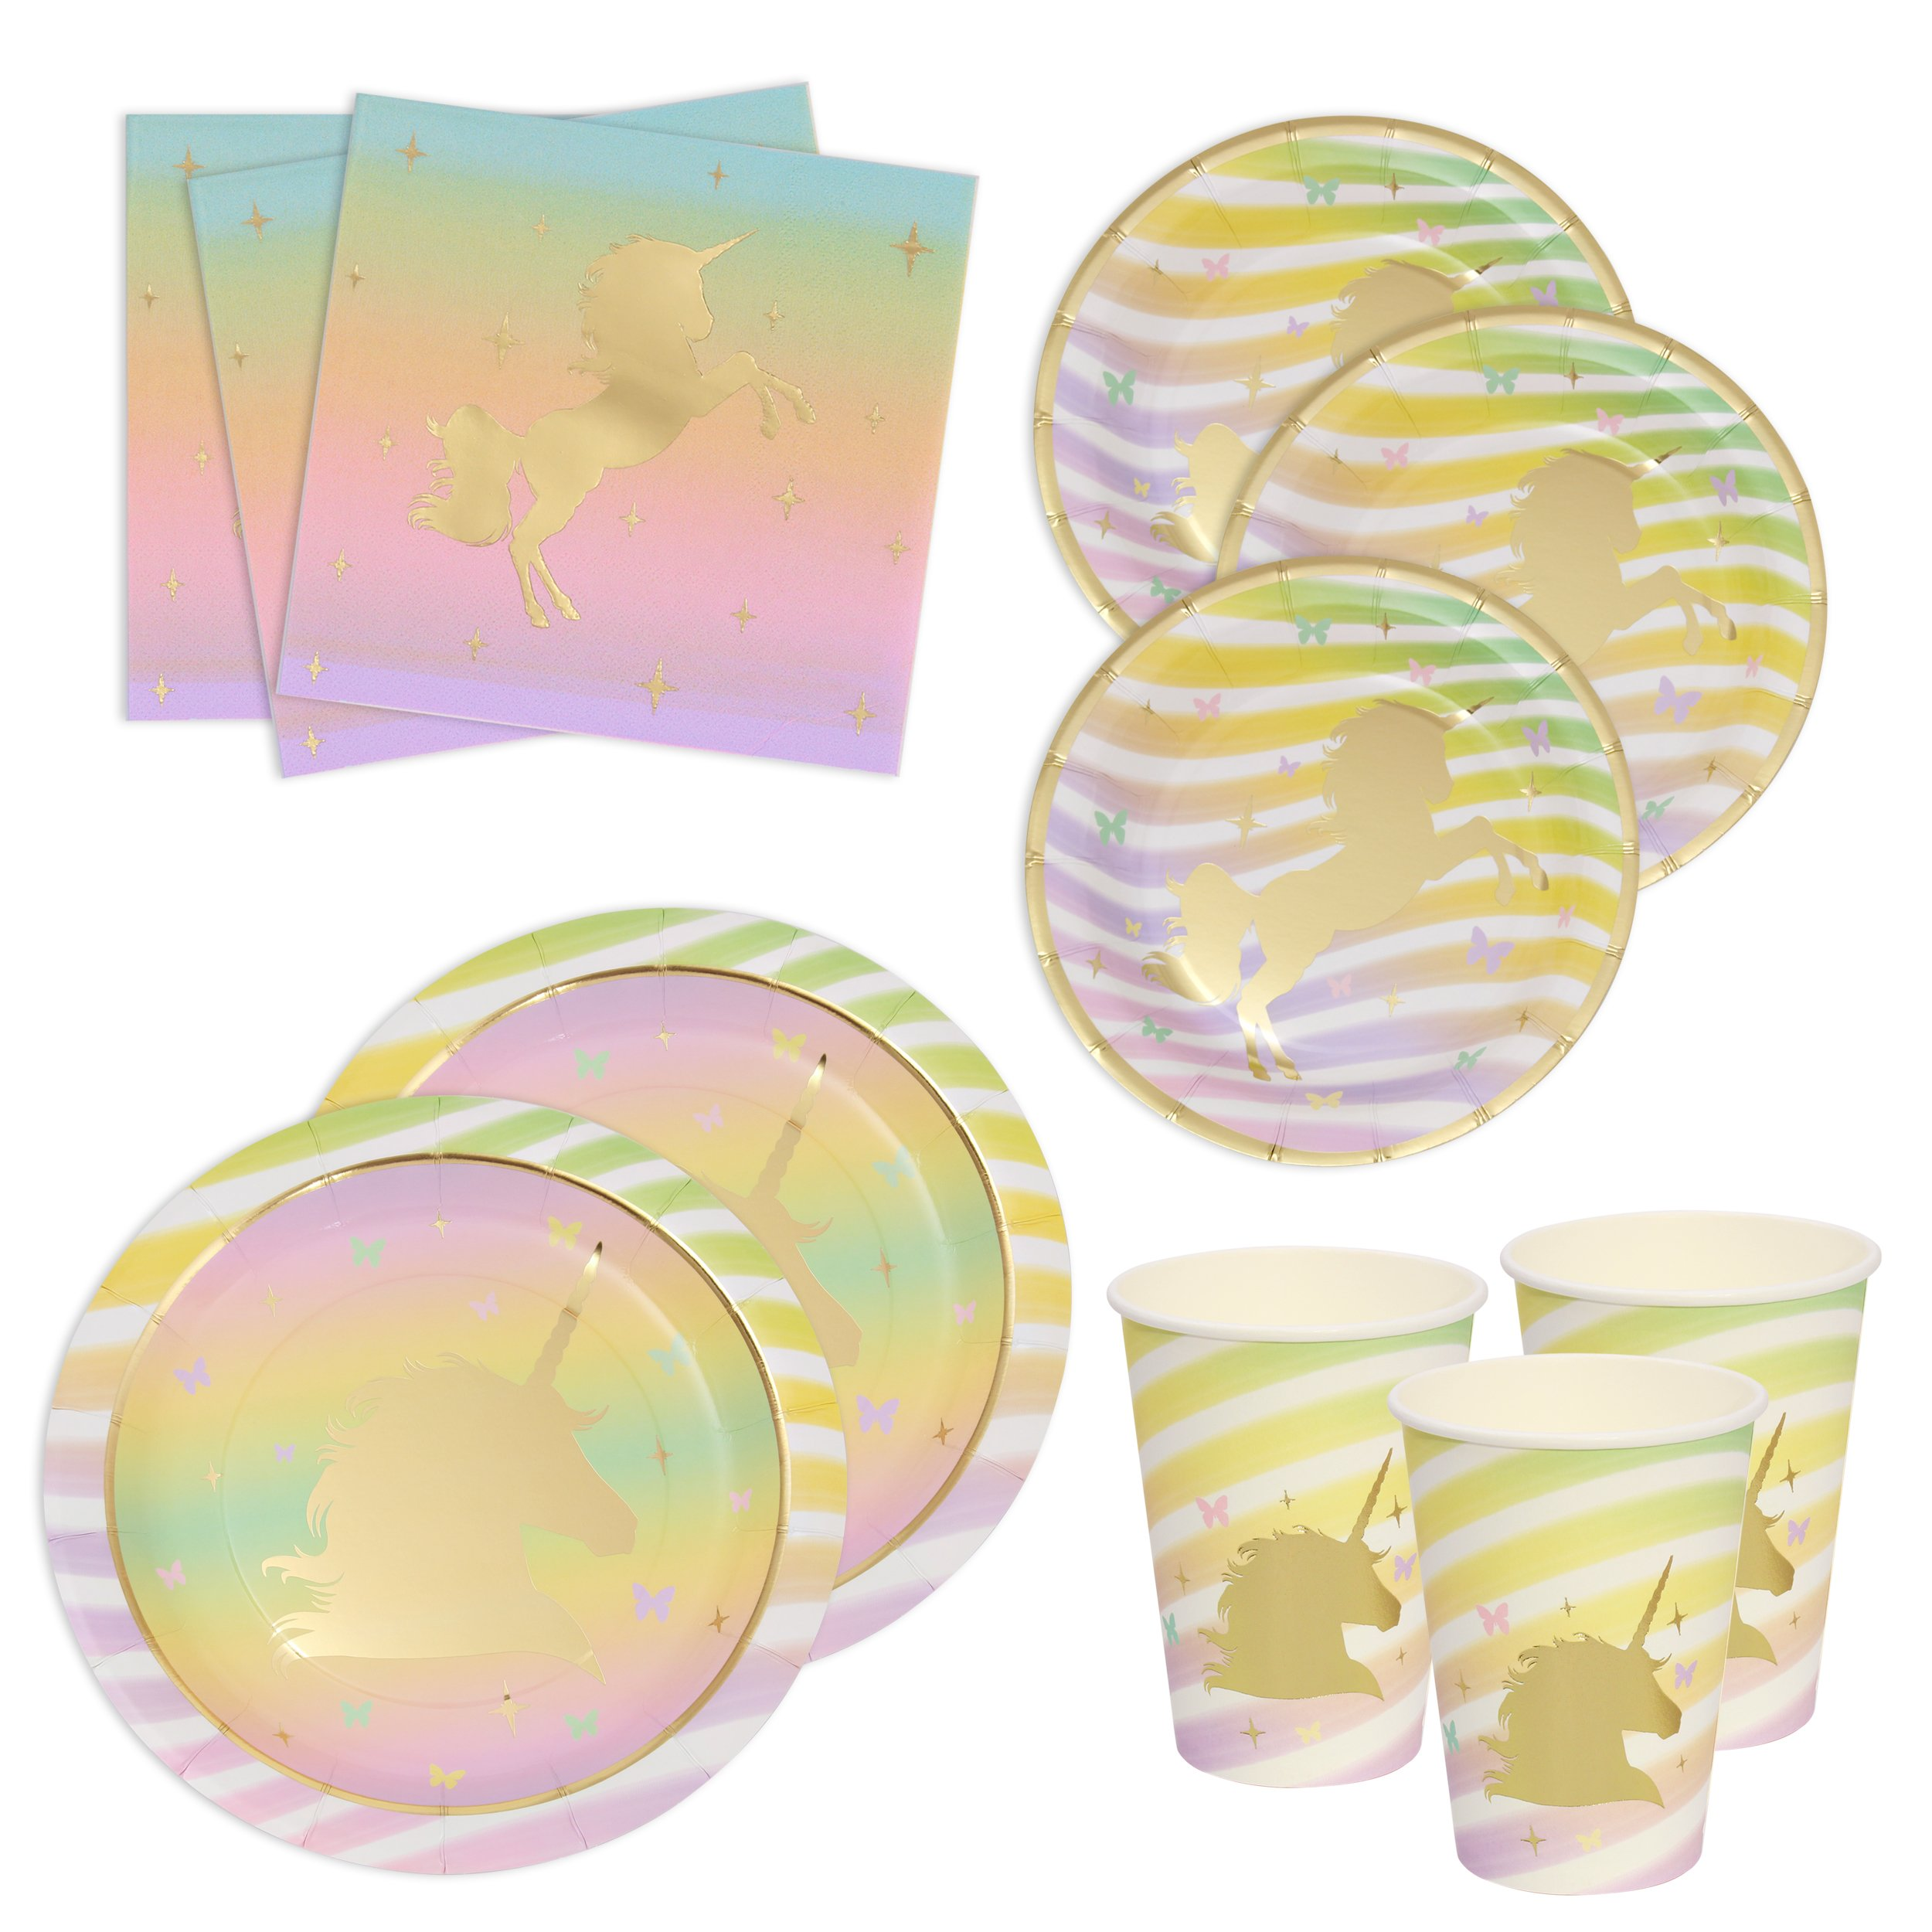 Gift Boutique Unicorn Birthday Plates Napkins and Cups with Gold Foil for 24 Guests 24 Dinner Plates 24 Dessert Plates 50 Luncheon Napkins and 24 Cups Unicorn Party Supplies Metallic Tableware Decor